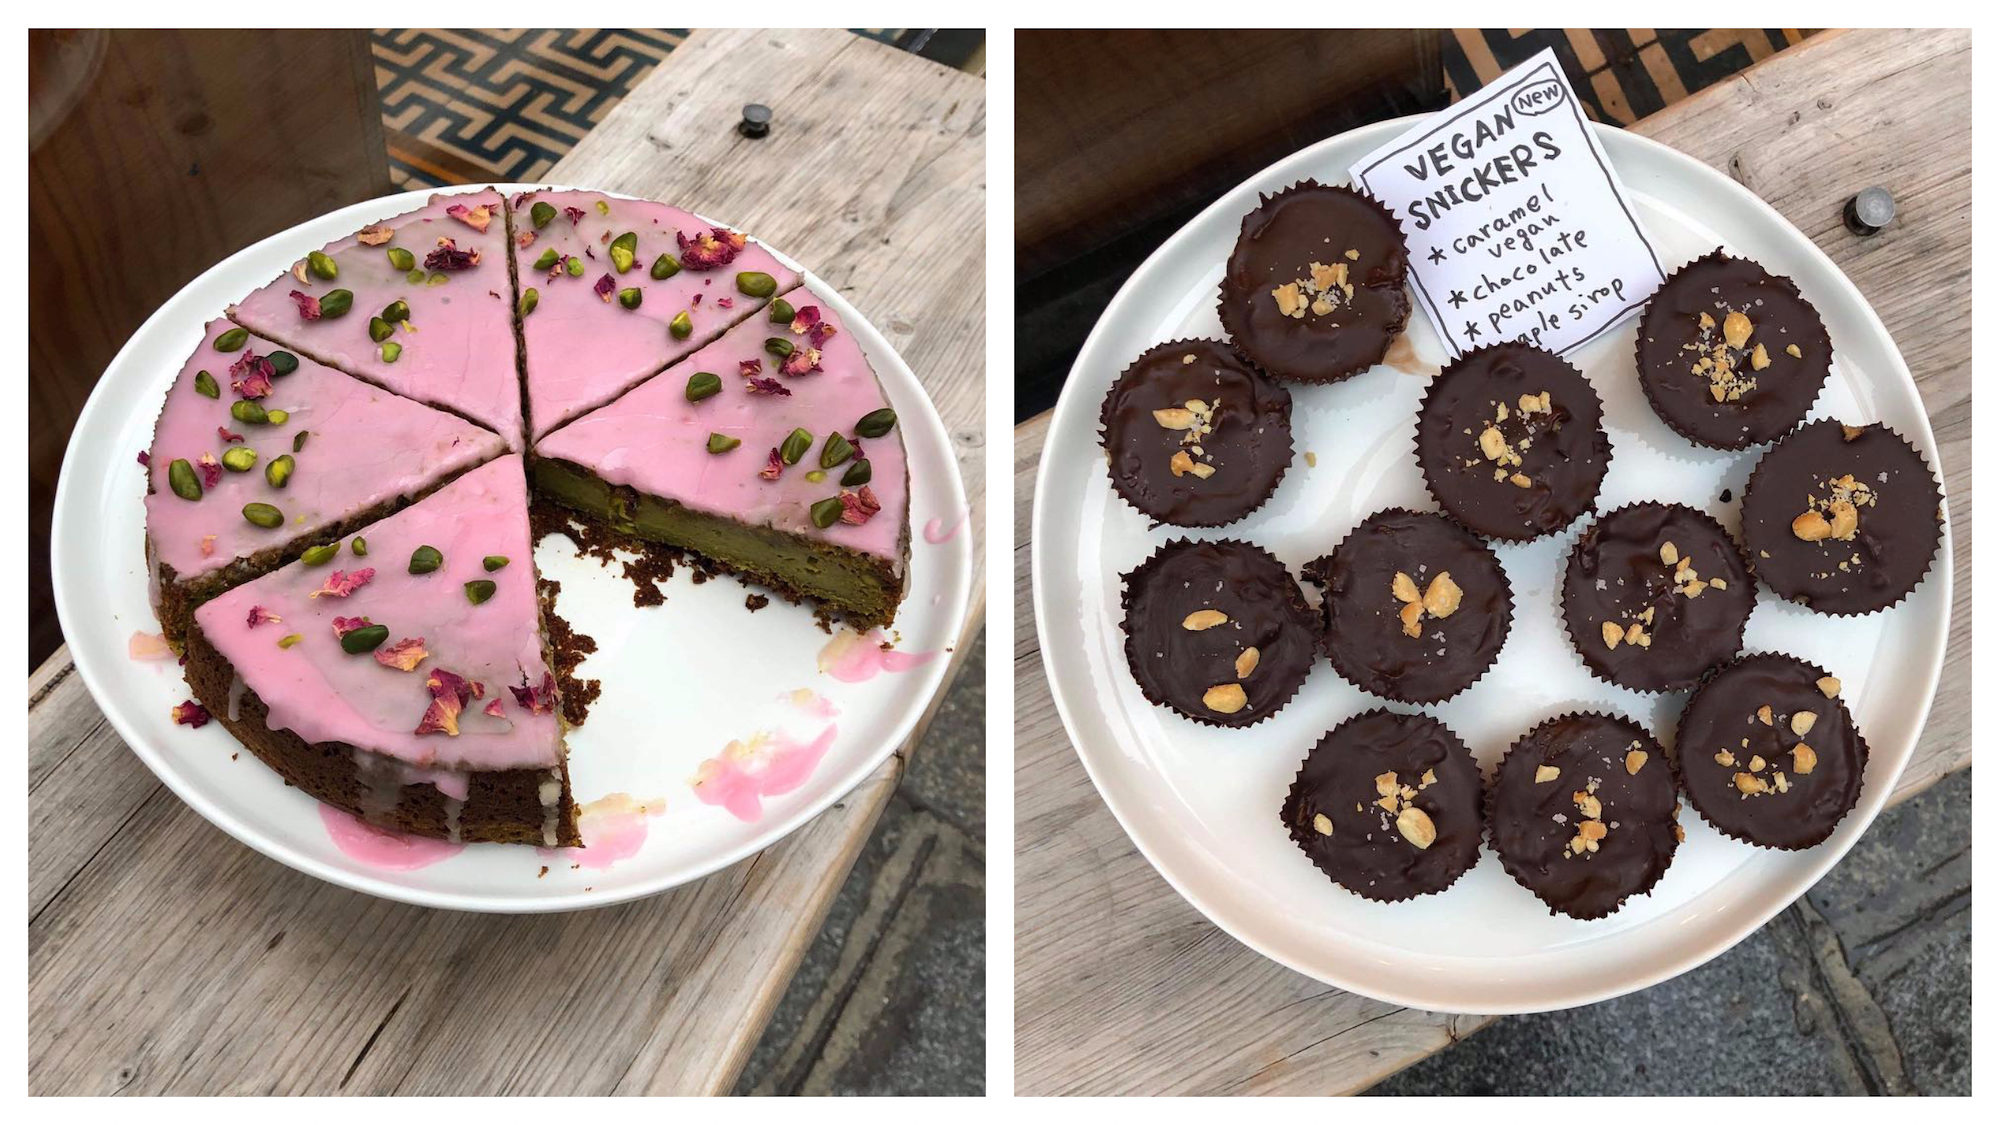 Ob-La-Di coffee shop in Paris is the place to go for gluten-free cakes like this delicious rose and pistachio iced cake (left) and chocolate 'Snicker' muffins (right).